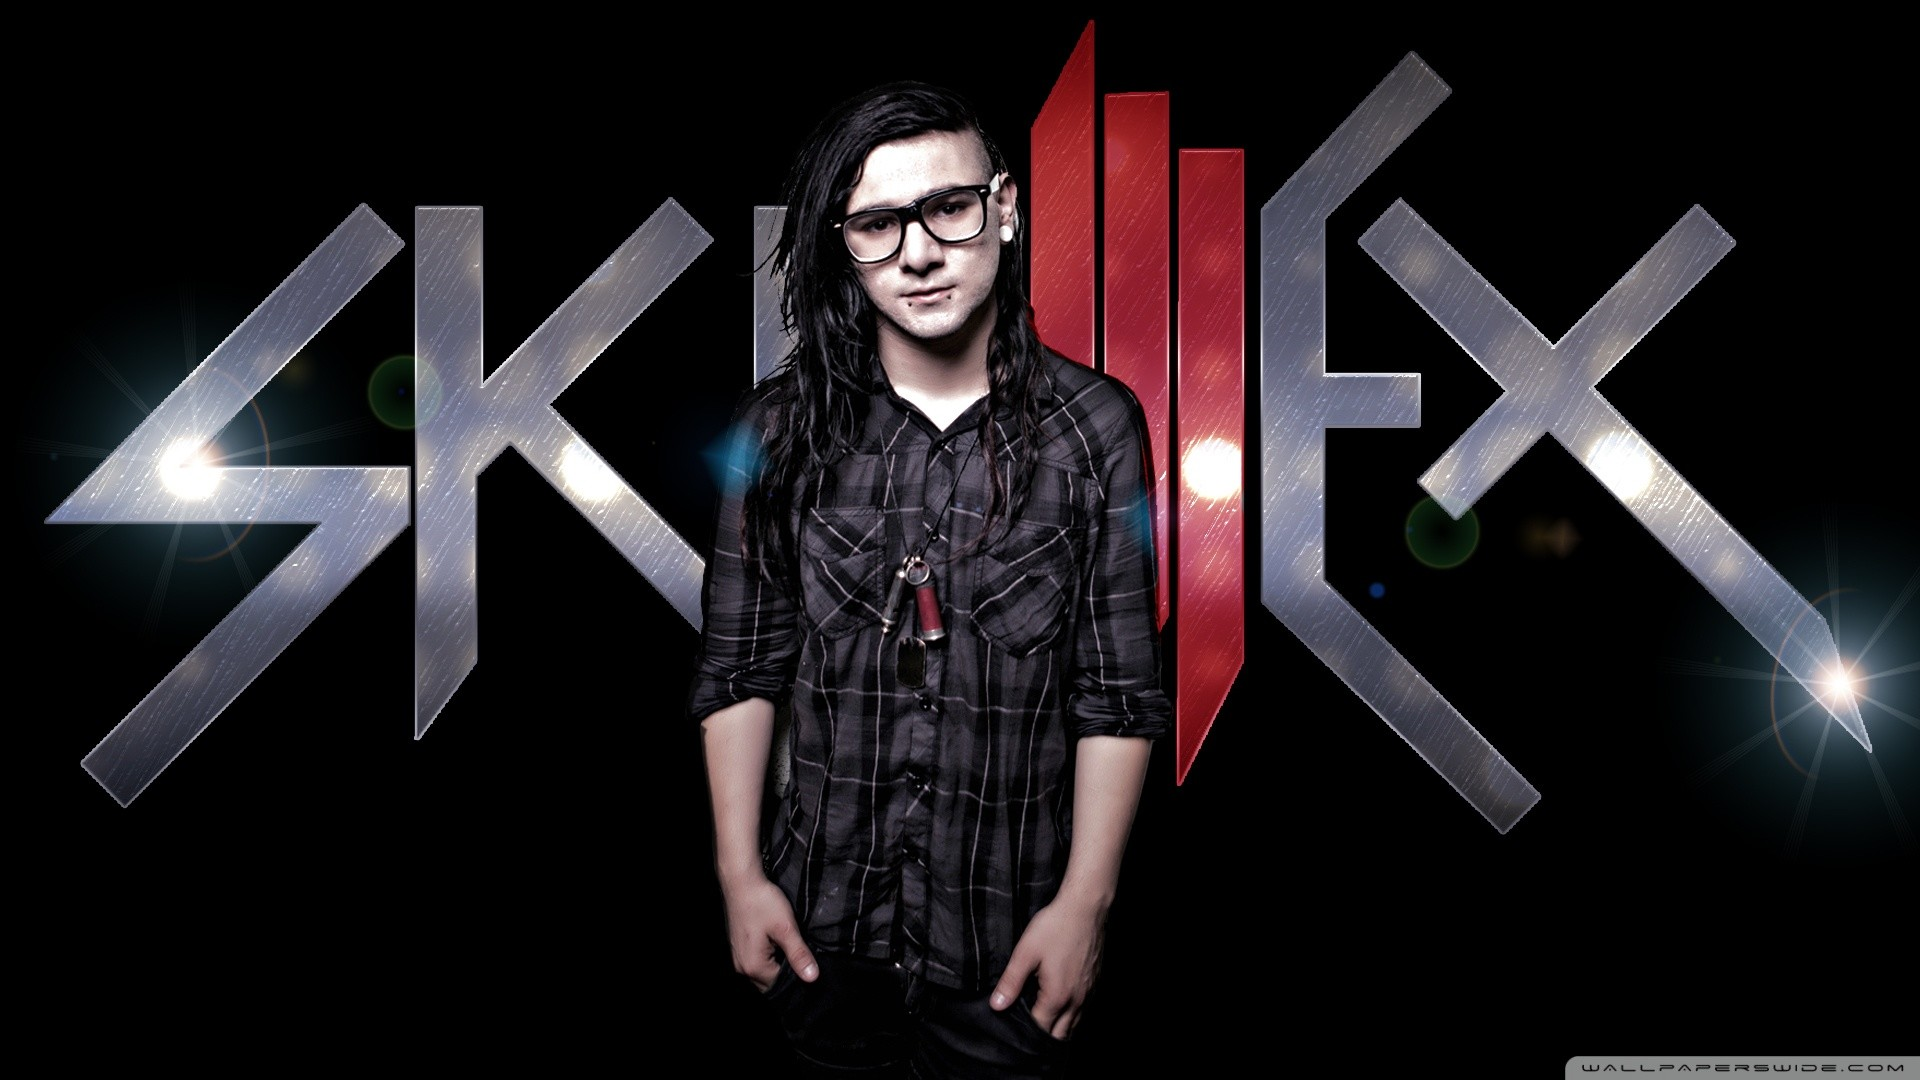 1920x1080 Skrillex Wallpaper